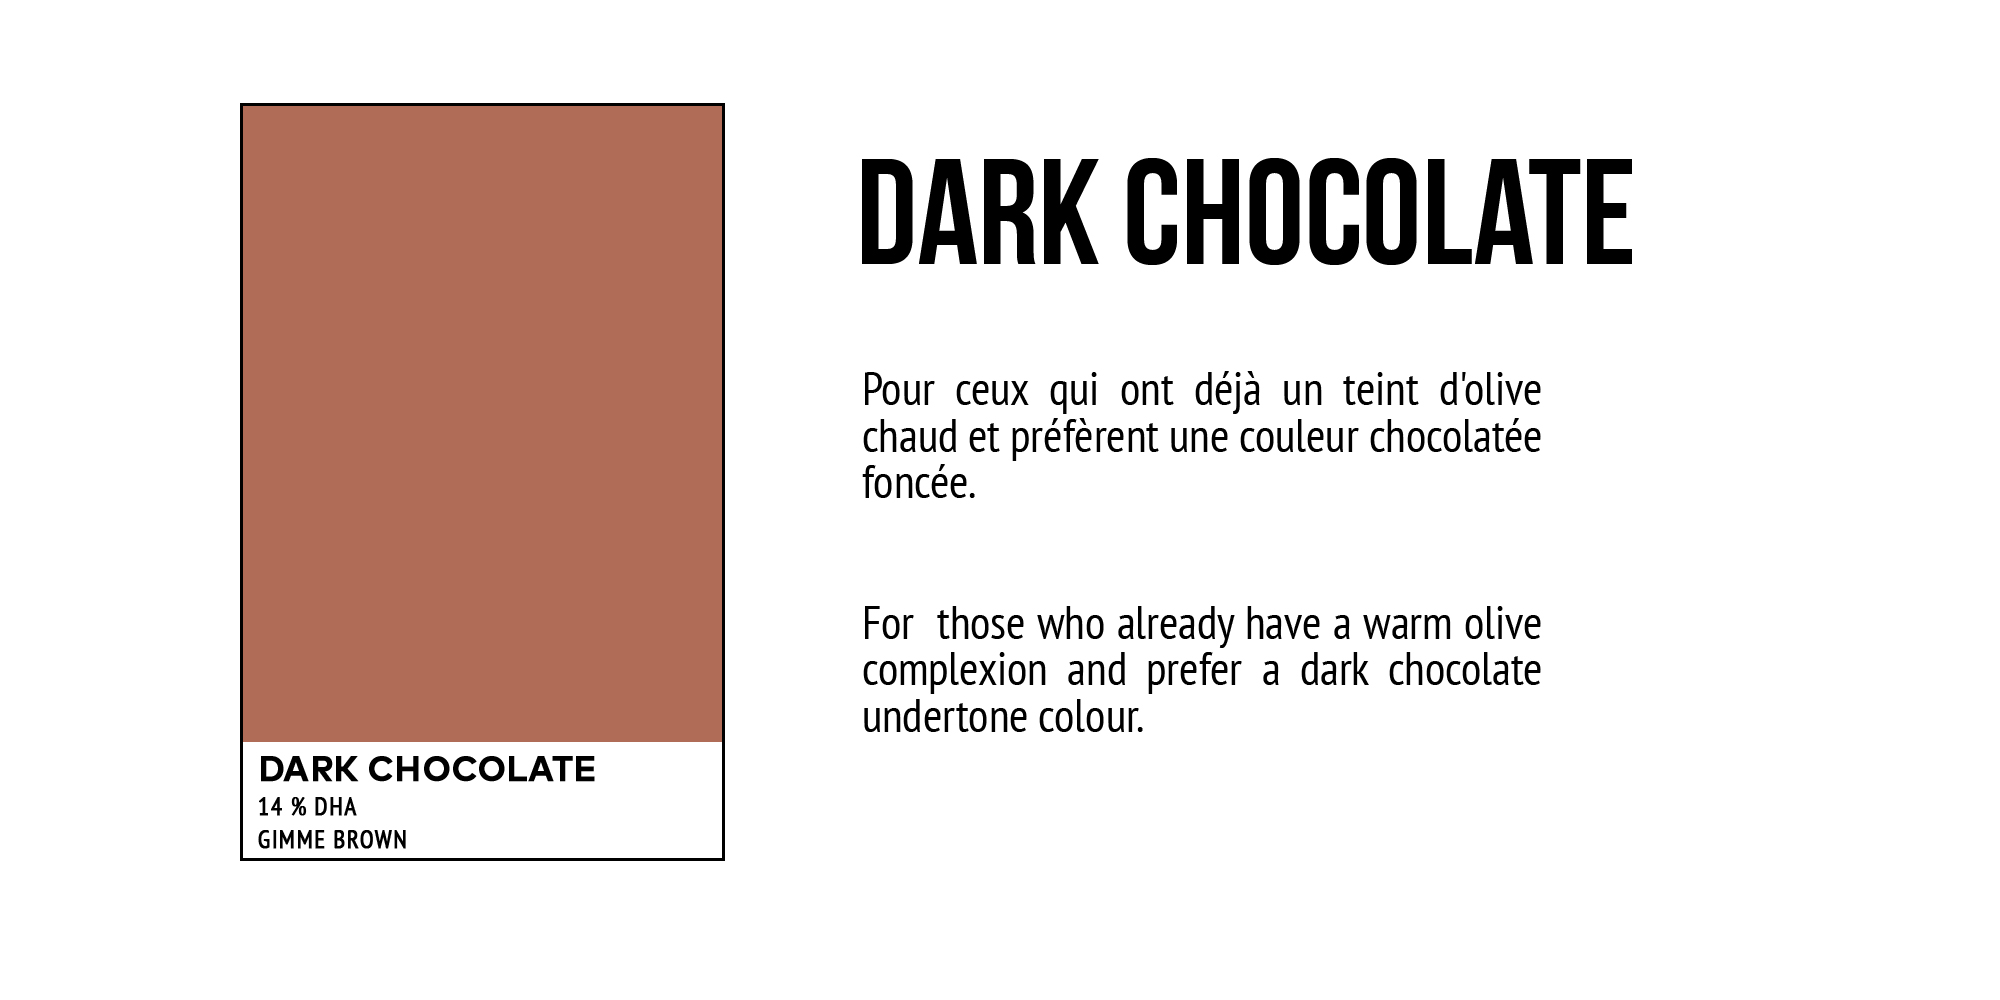 7 DARK CHOCOLATE.jpg